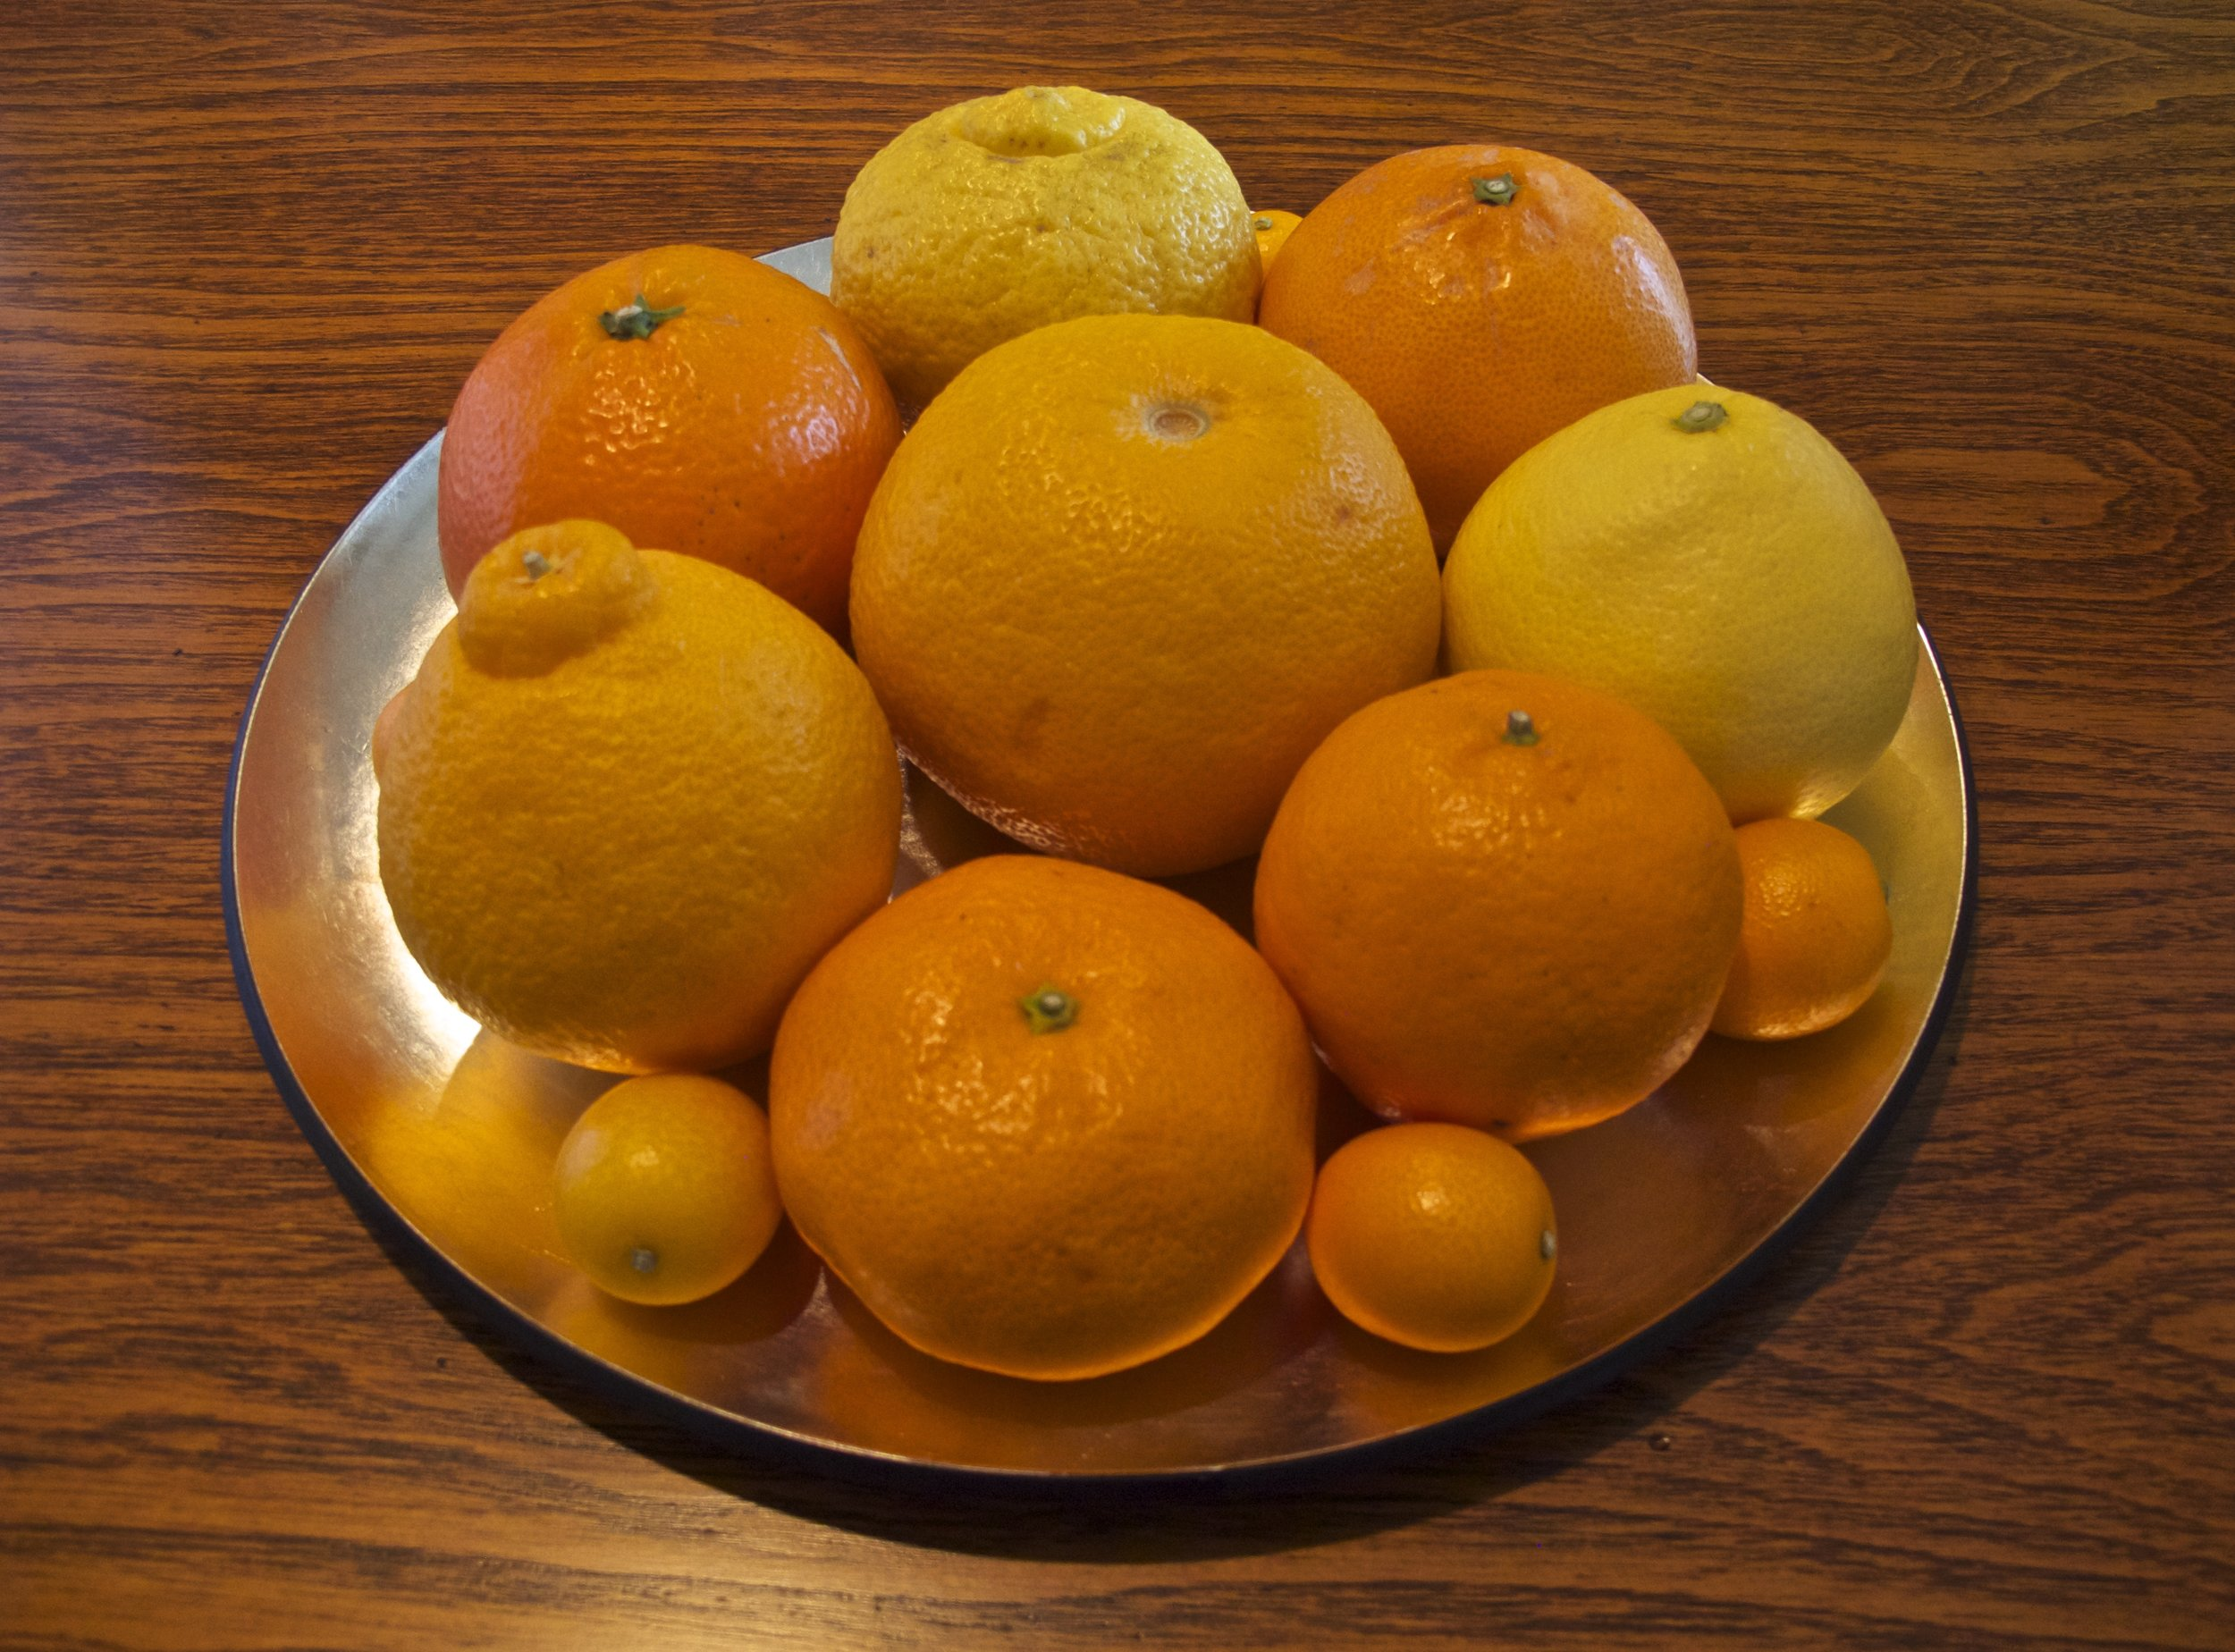 A sunburst colored mix of sweet-sour  mikan , pomelos, and their naturally mutated and commercially hybridized offspring.  Hassaku  in the center is surrounded clockwise from the top by yellow  haruka ,  setoka ,  hyuganatsu ,  ponkan ,  mikan ,  dekopon , and  iyokan , with small  kinkan  tucked into the circle.